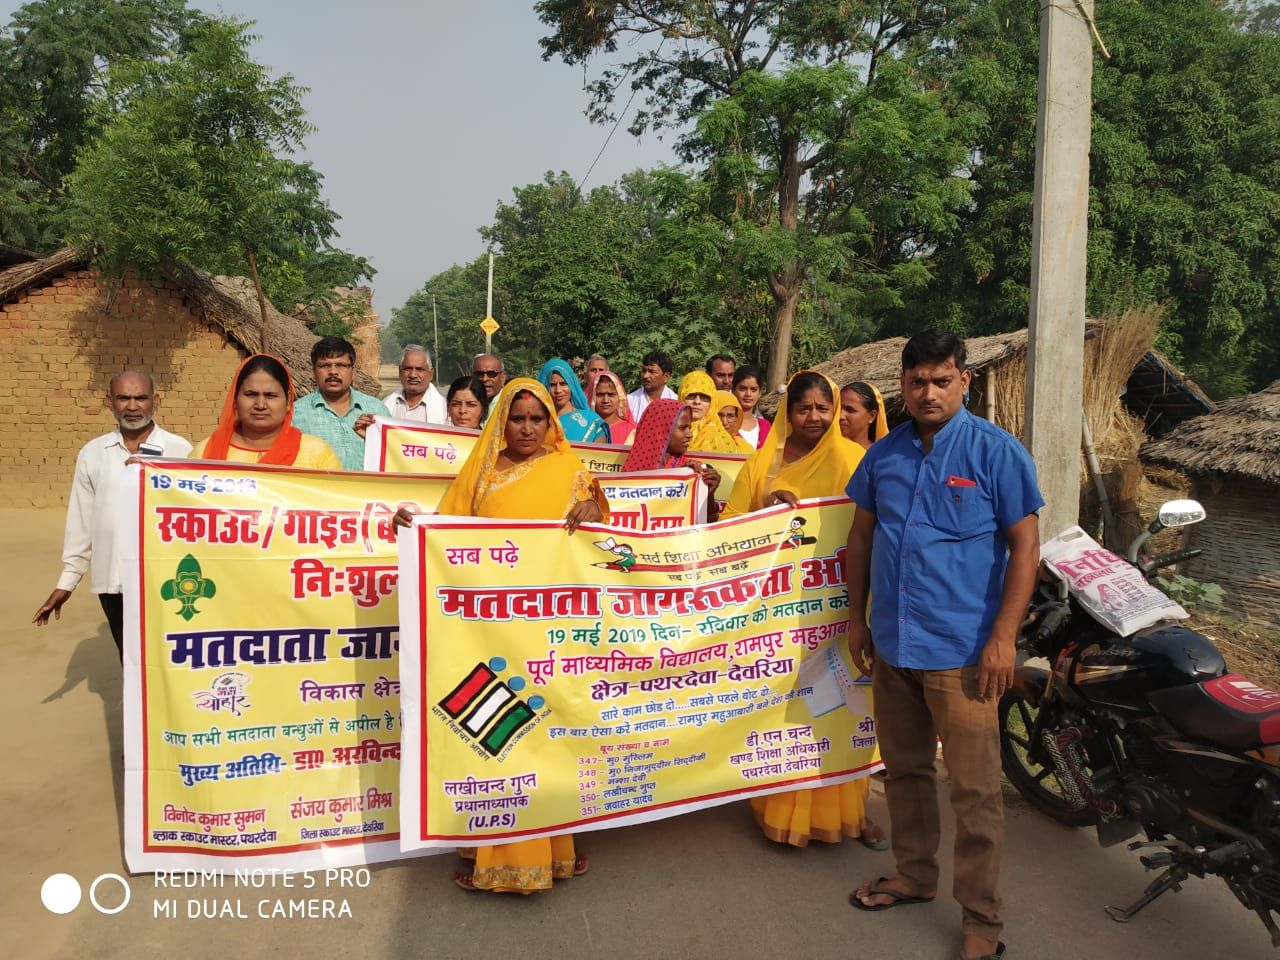 SVEEP DEORIA VOTER AWARENESS PROGRAM UPS RAMPUR MAHUWABARI PATHARDEVA DEORIA  (14).jpeg